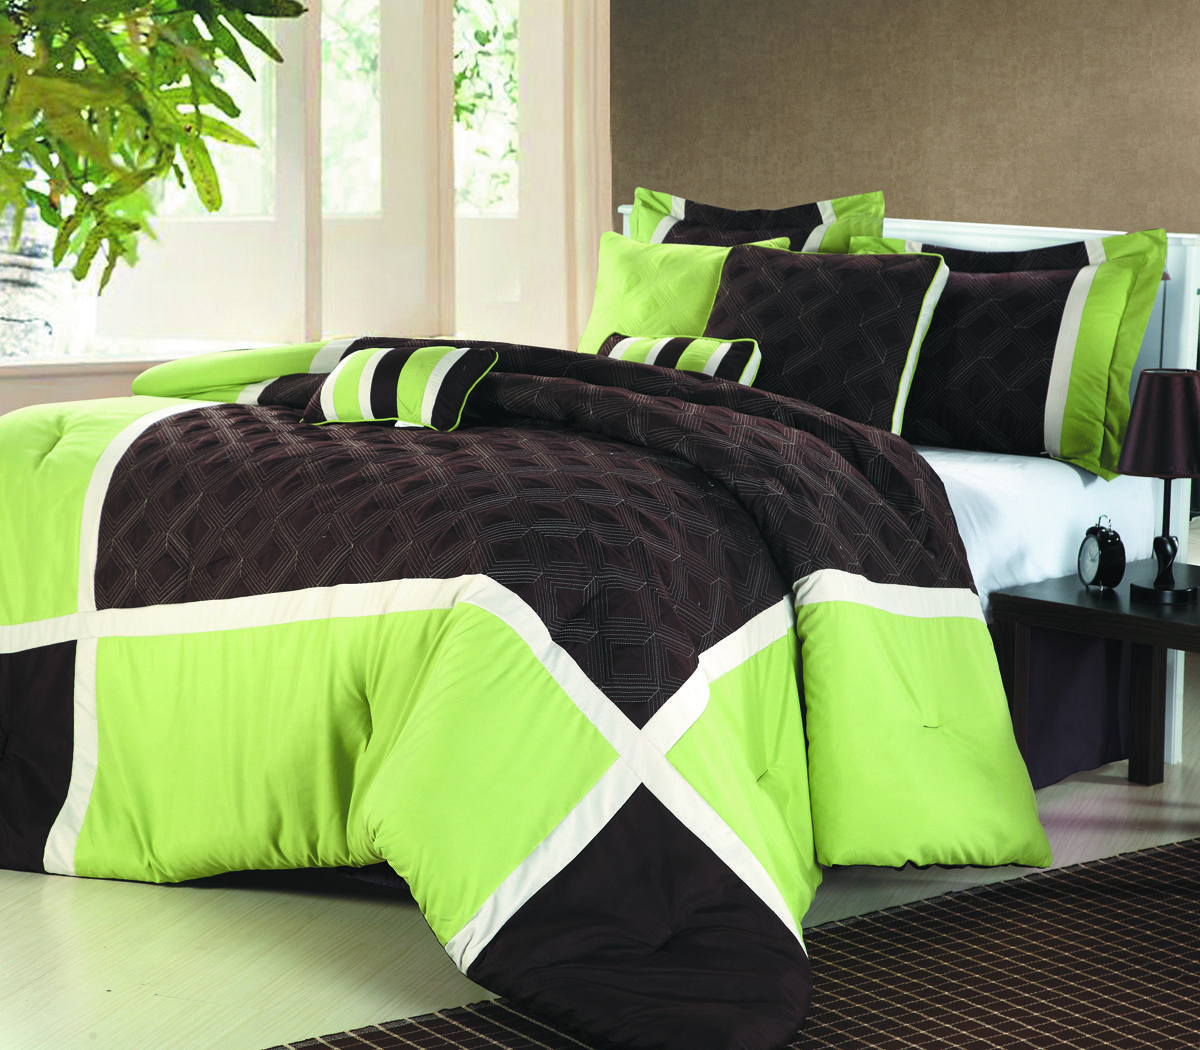 quilted patchwork comforter set, solid color block tone on tone